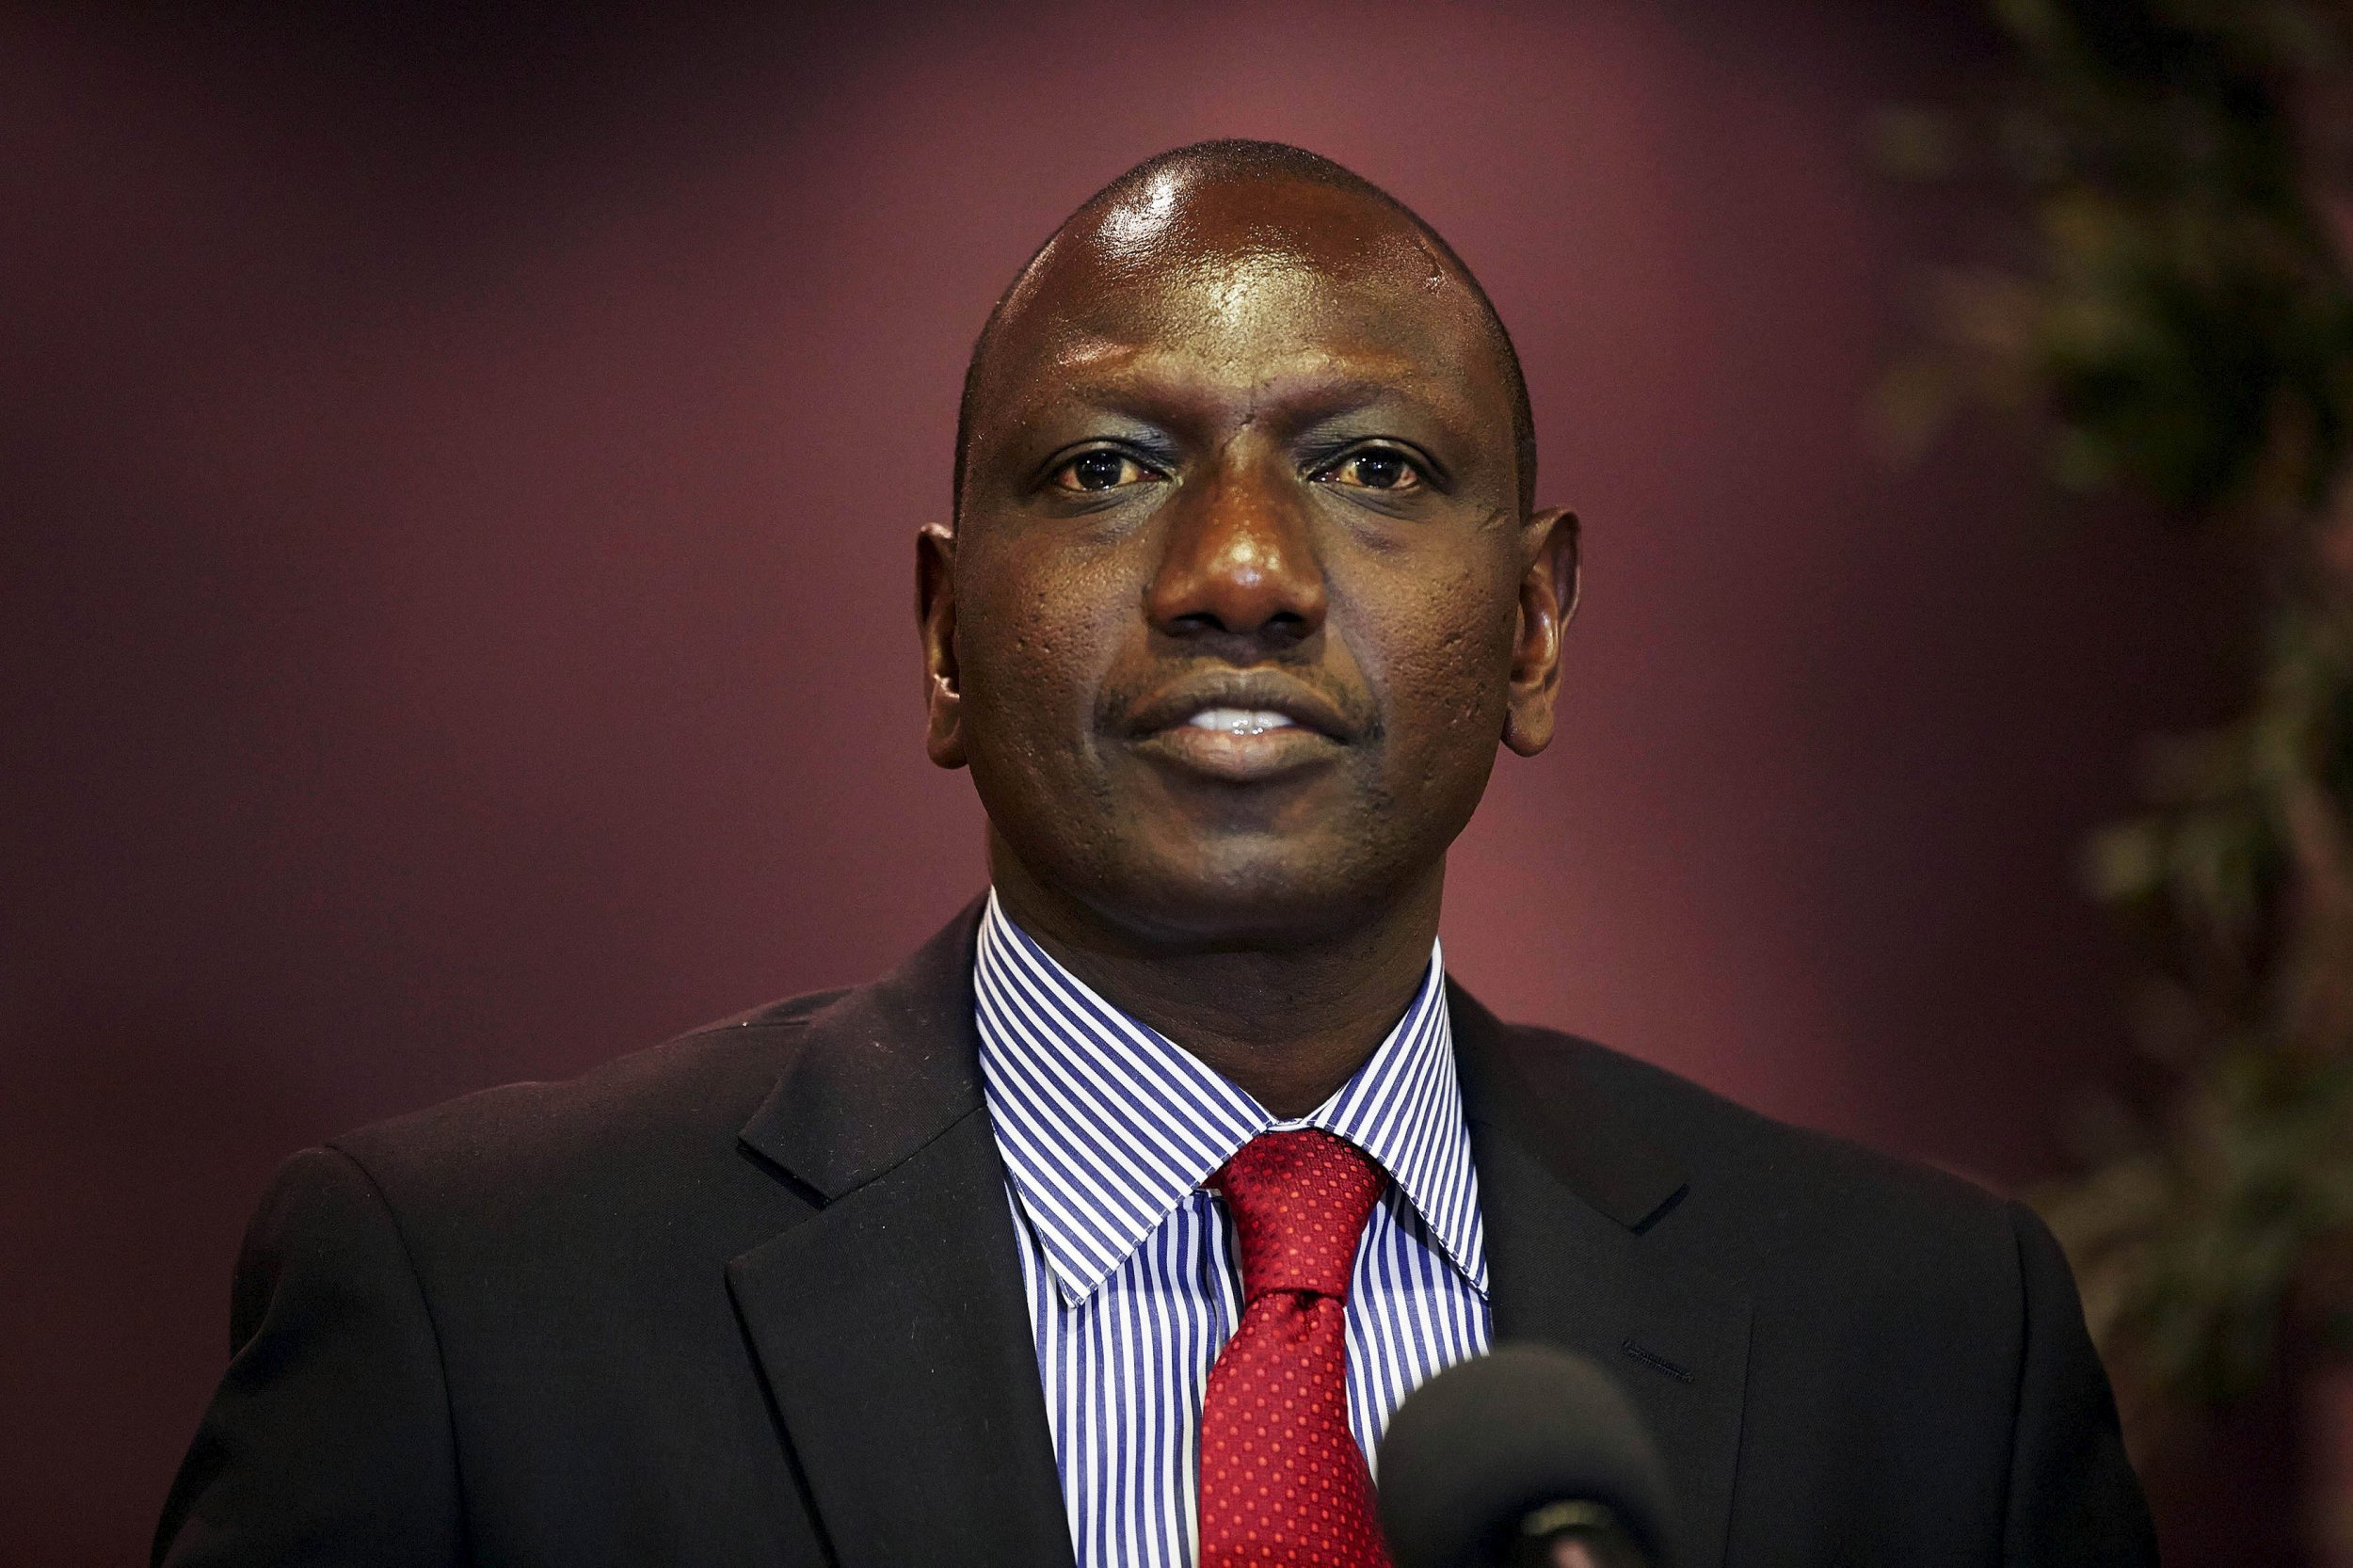 Kenya's Deputy President William Ruto speaks at the Hague.